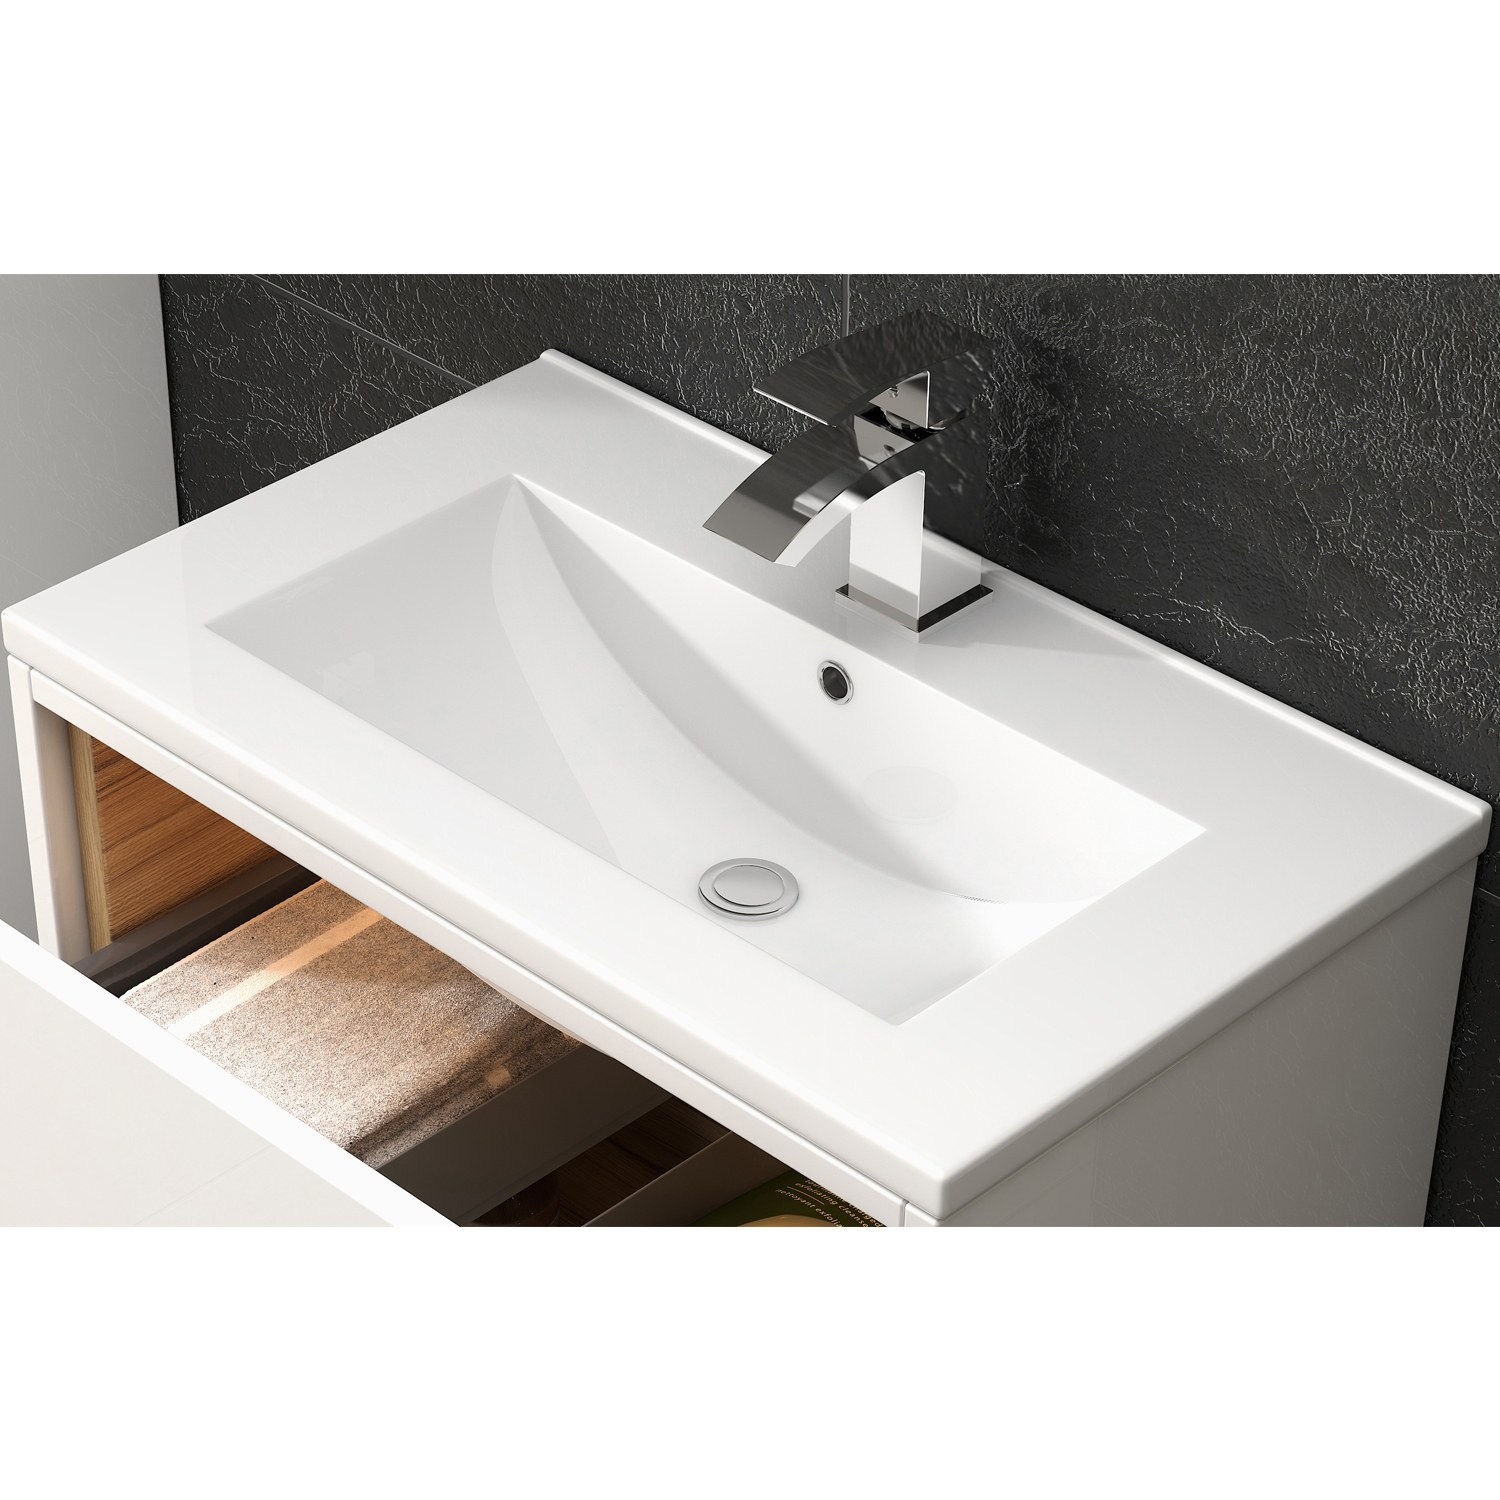 Hudson Reed Coast 2 Floor Standing Vanity Unit and Minimalist Basin 600mm Wide White 1 Tap Hole